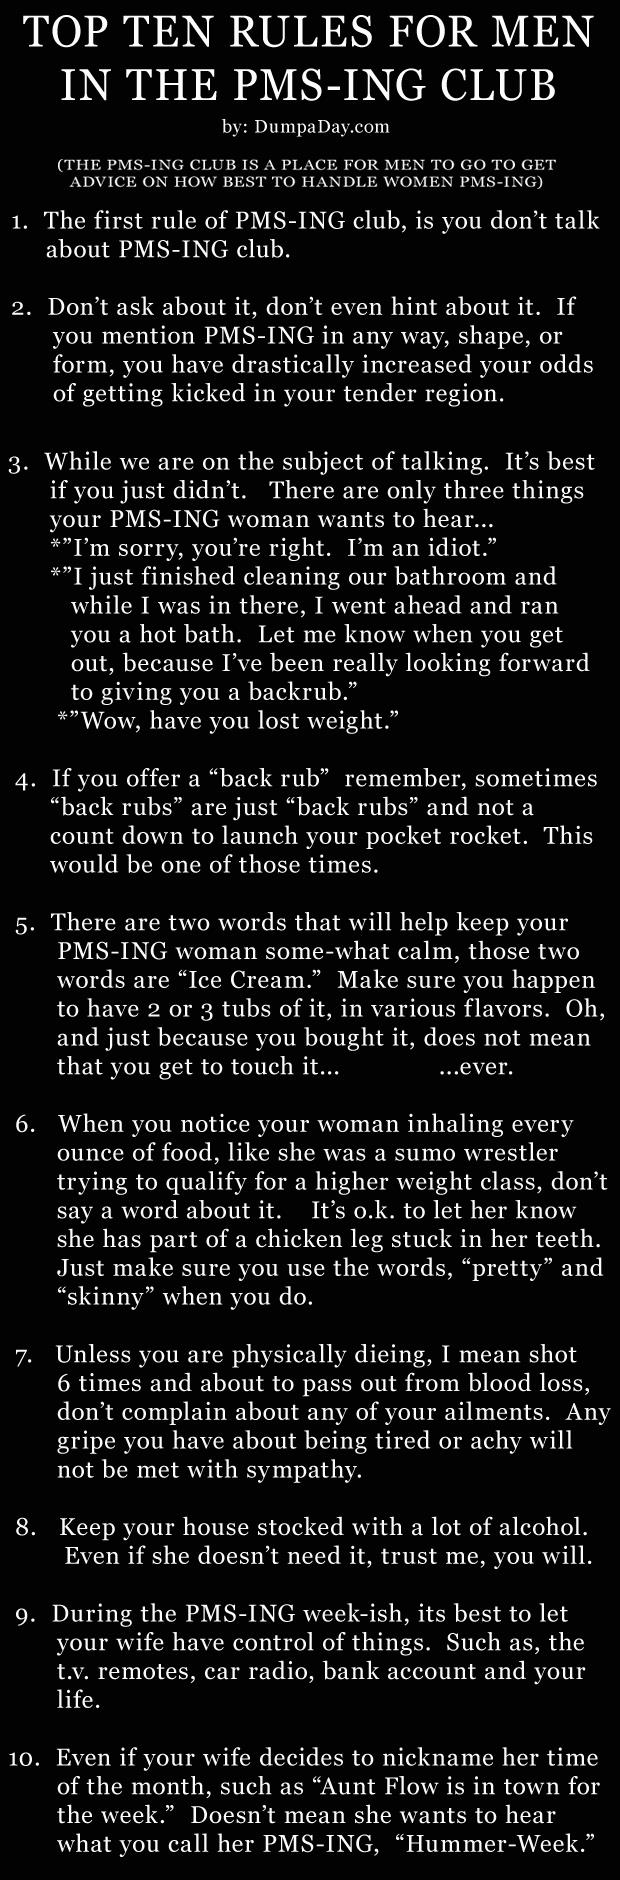 the pms club funny rules